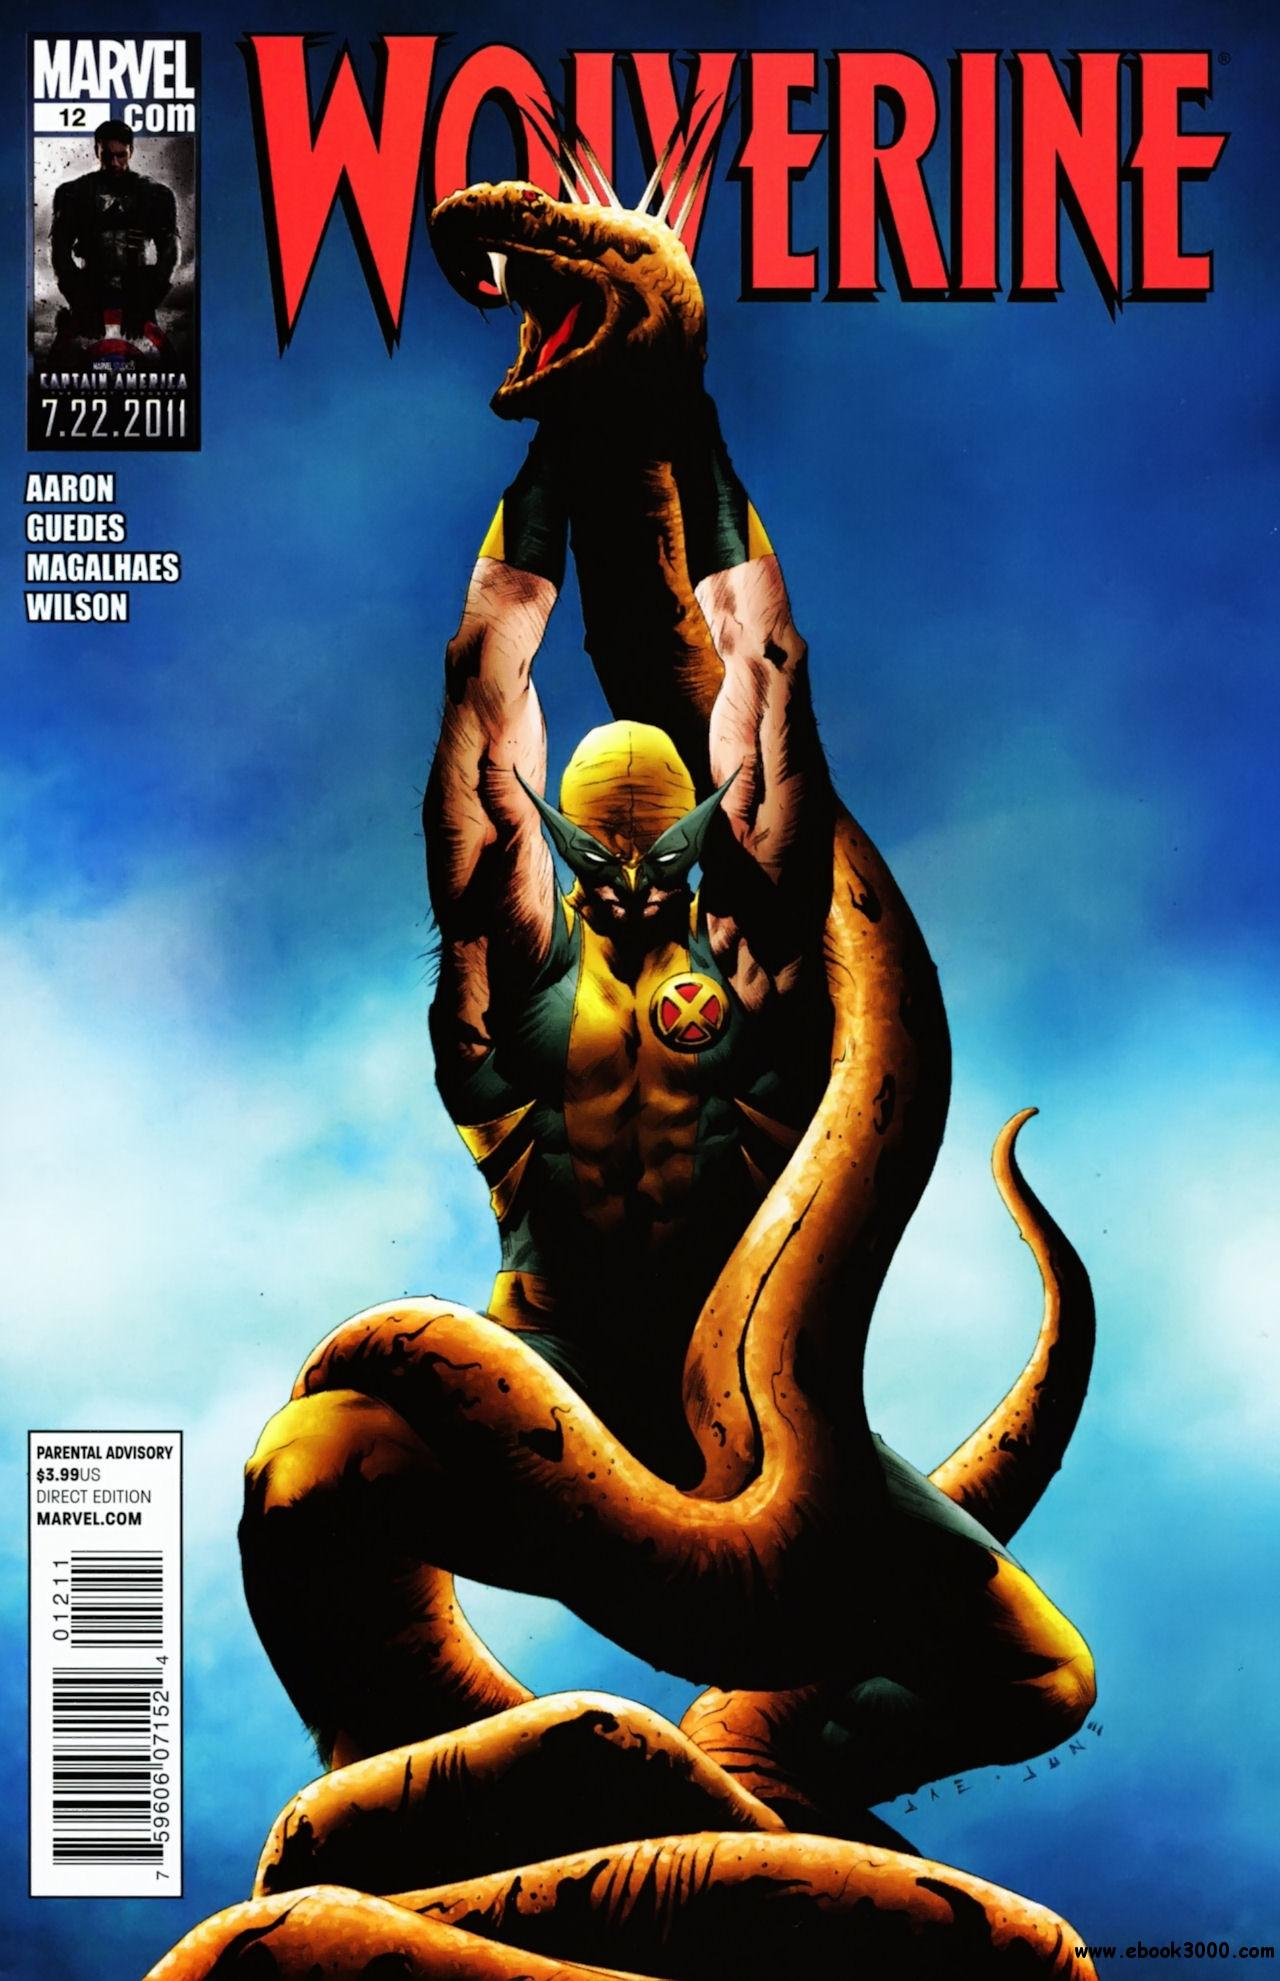 Wolverine #12 (2011) free download